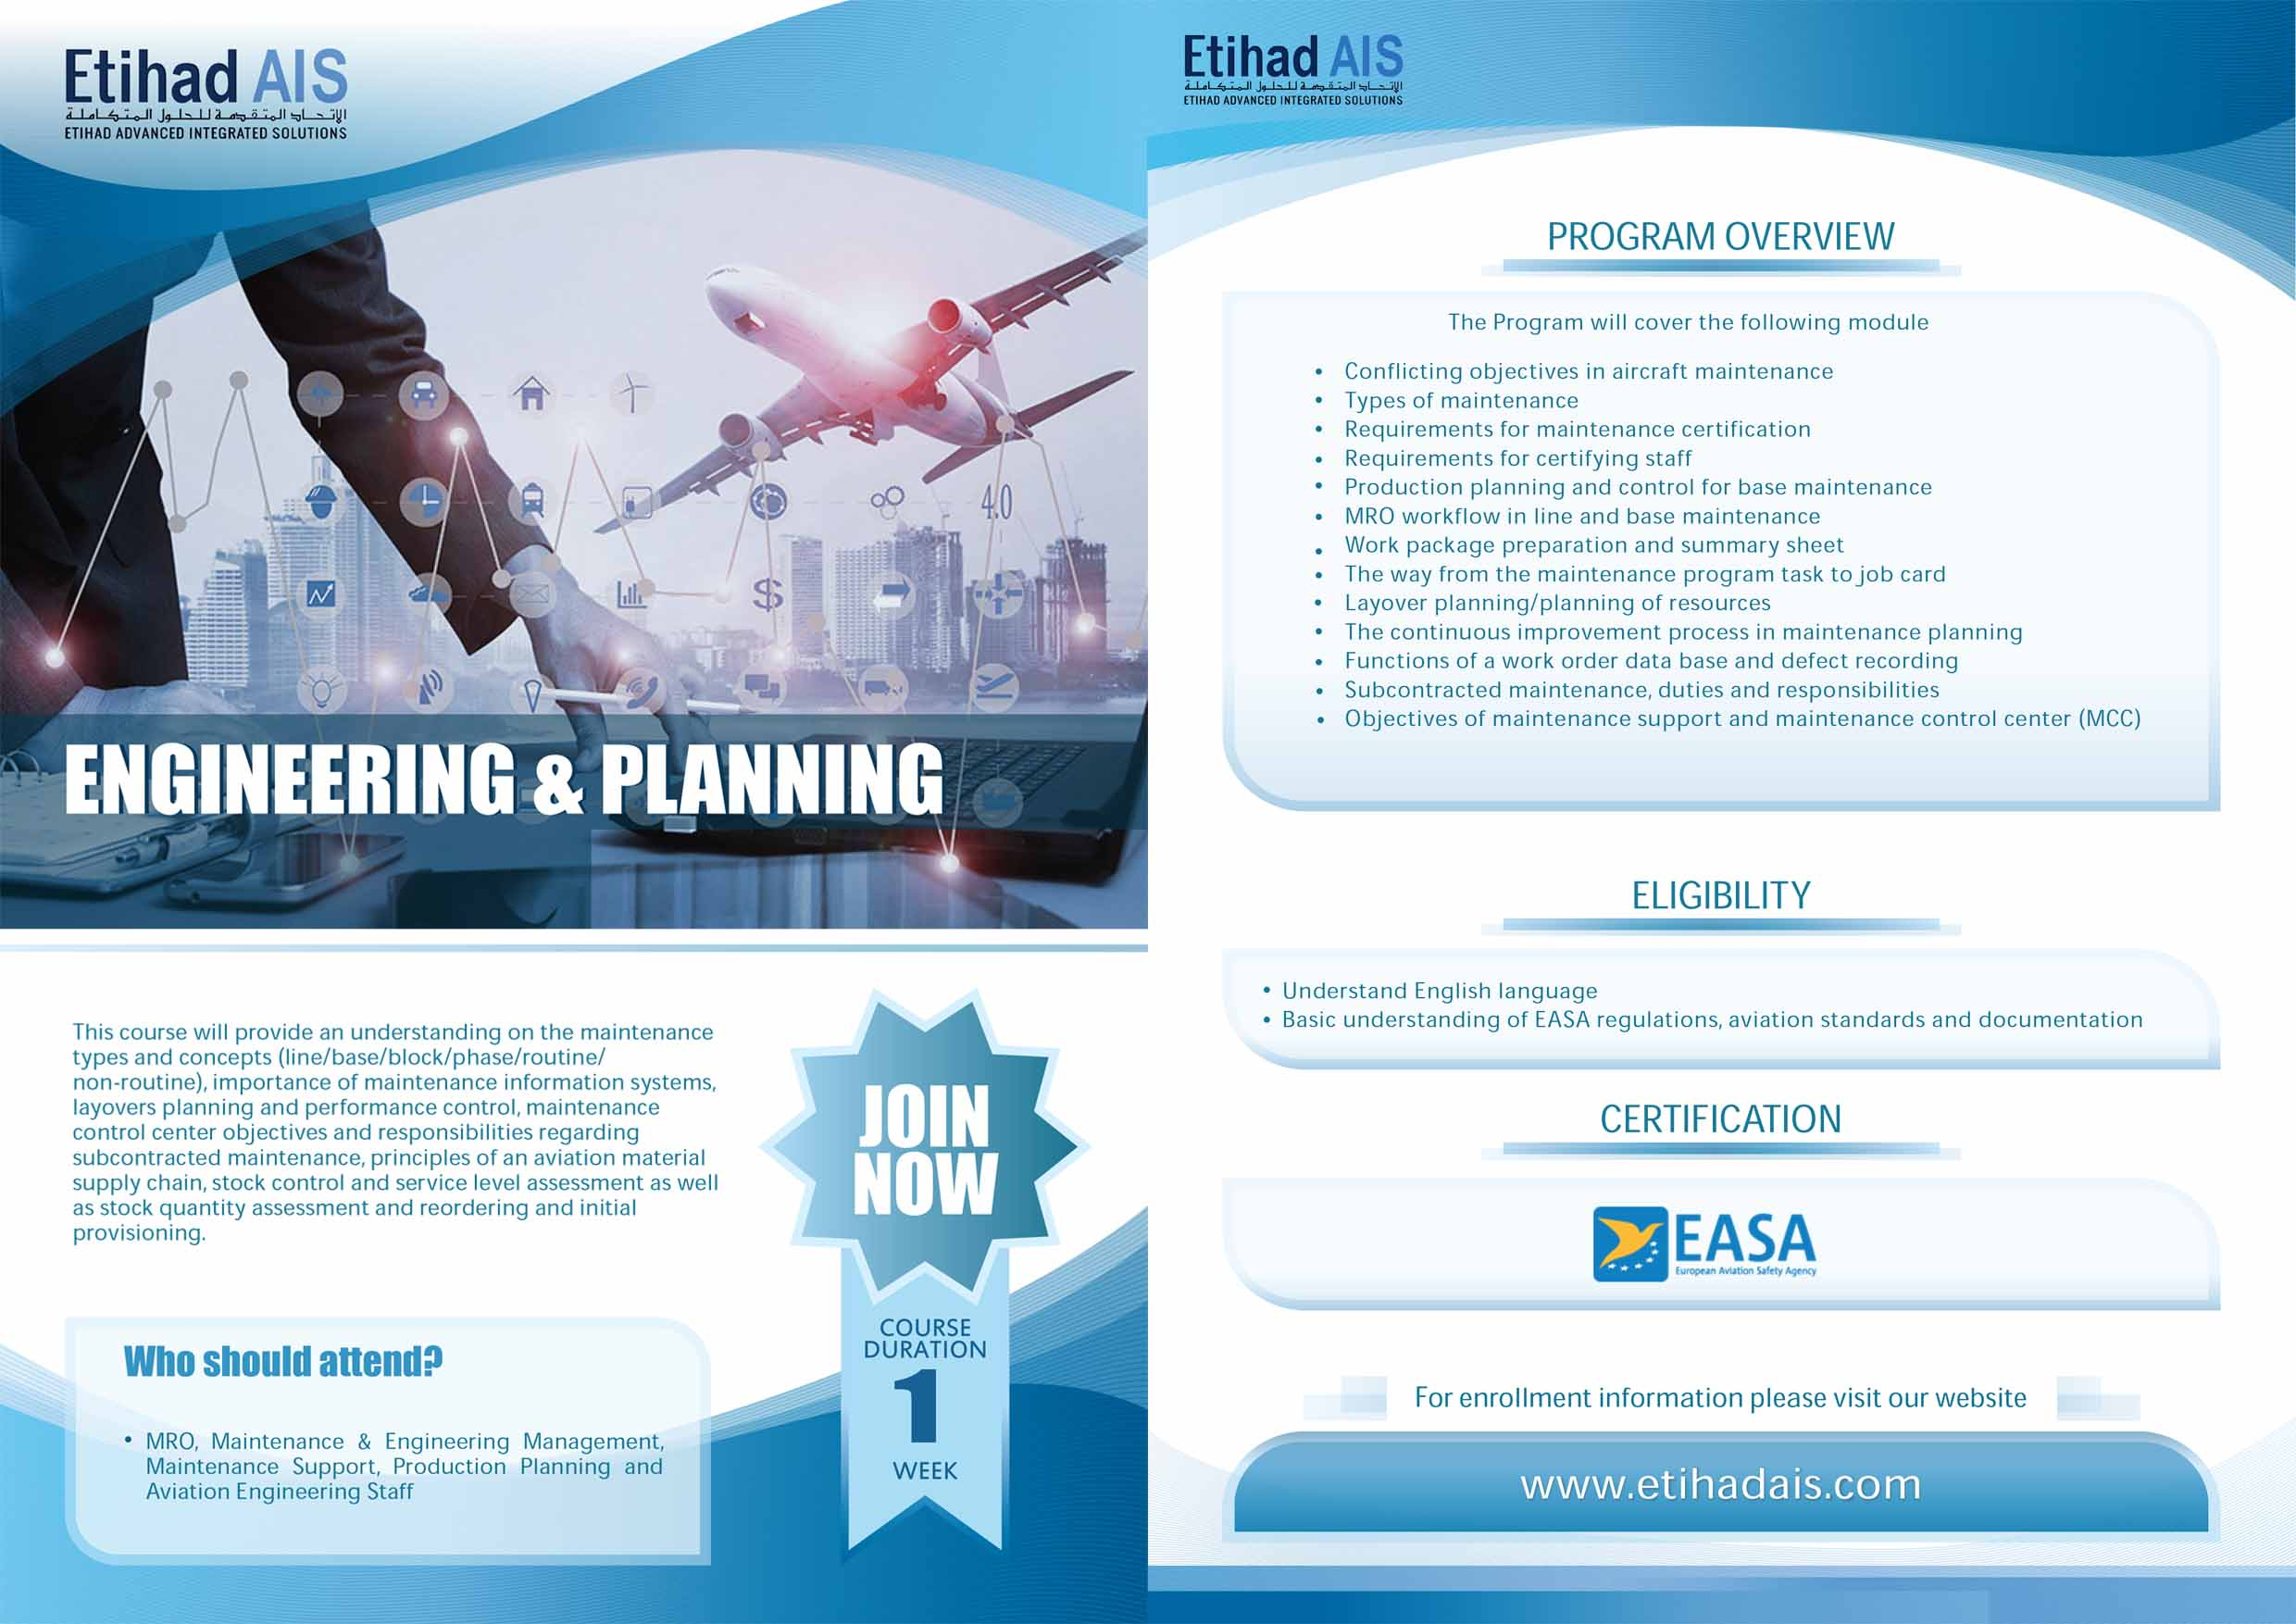 Engineering & Planning